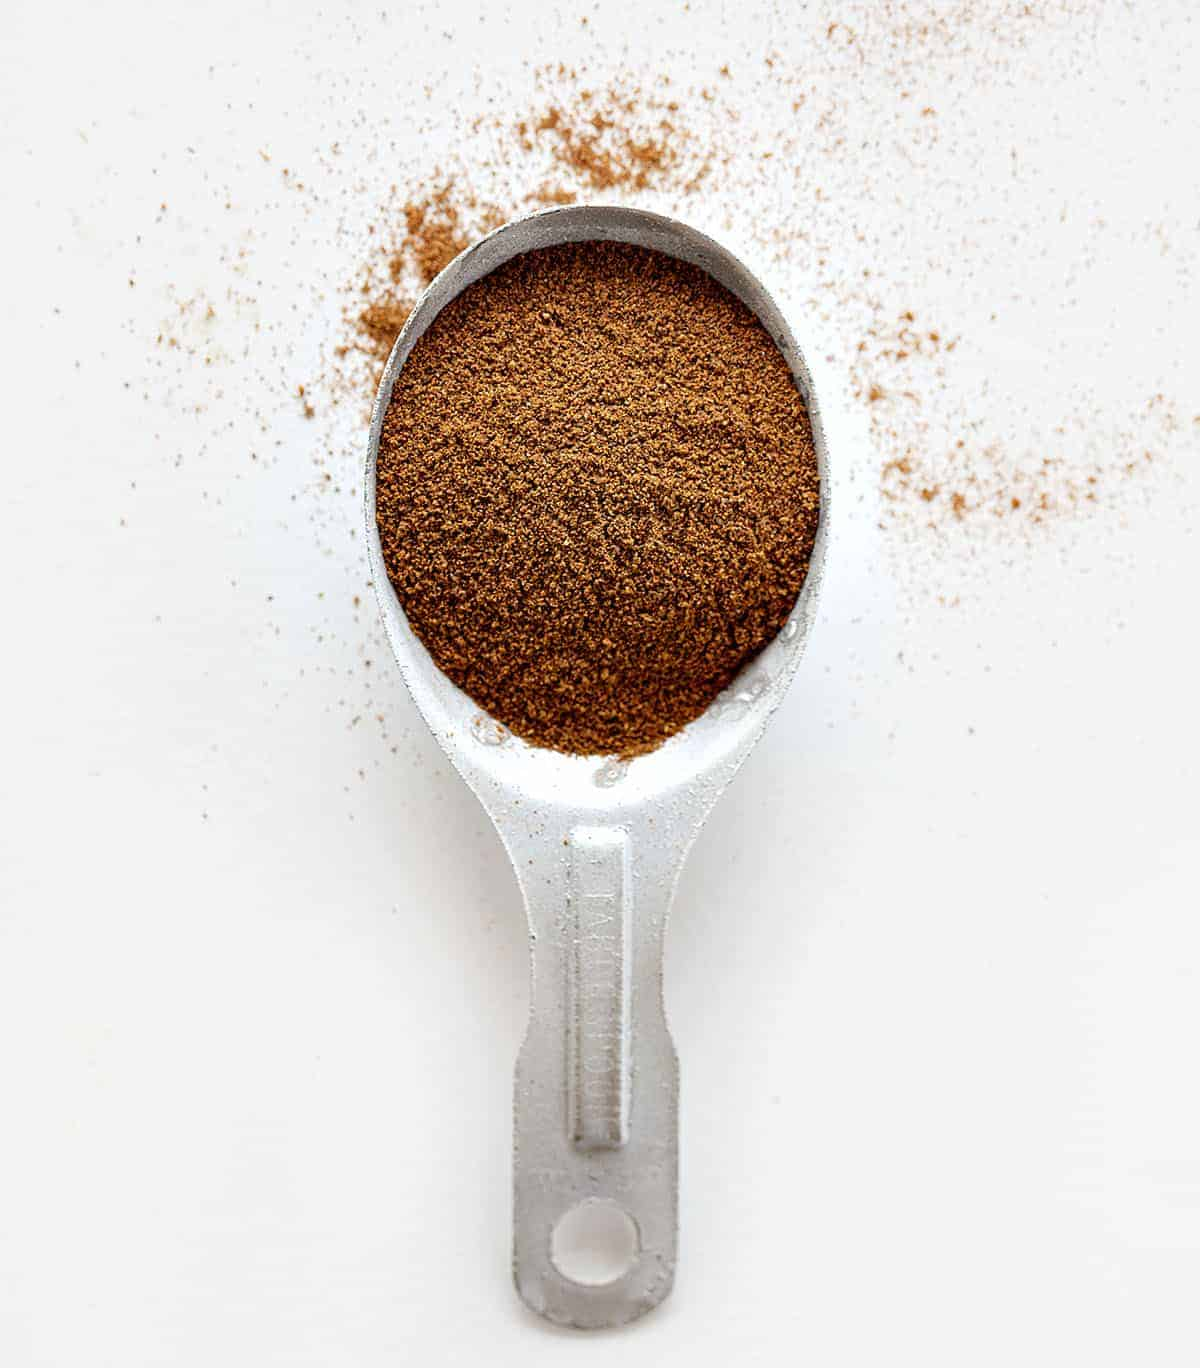 Homemade Pumpkin Pie Spice in a Measuring Spoon